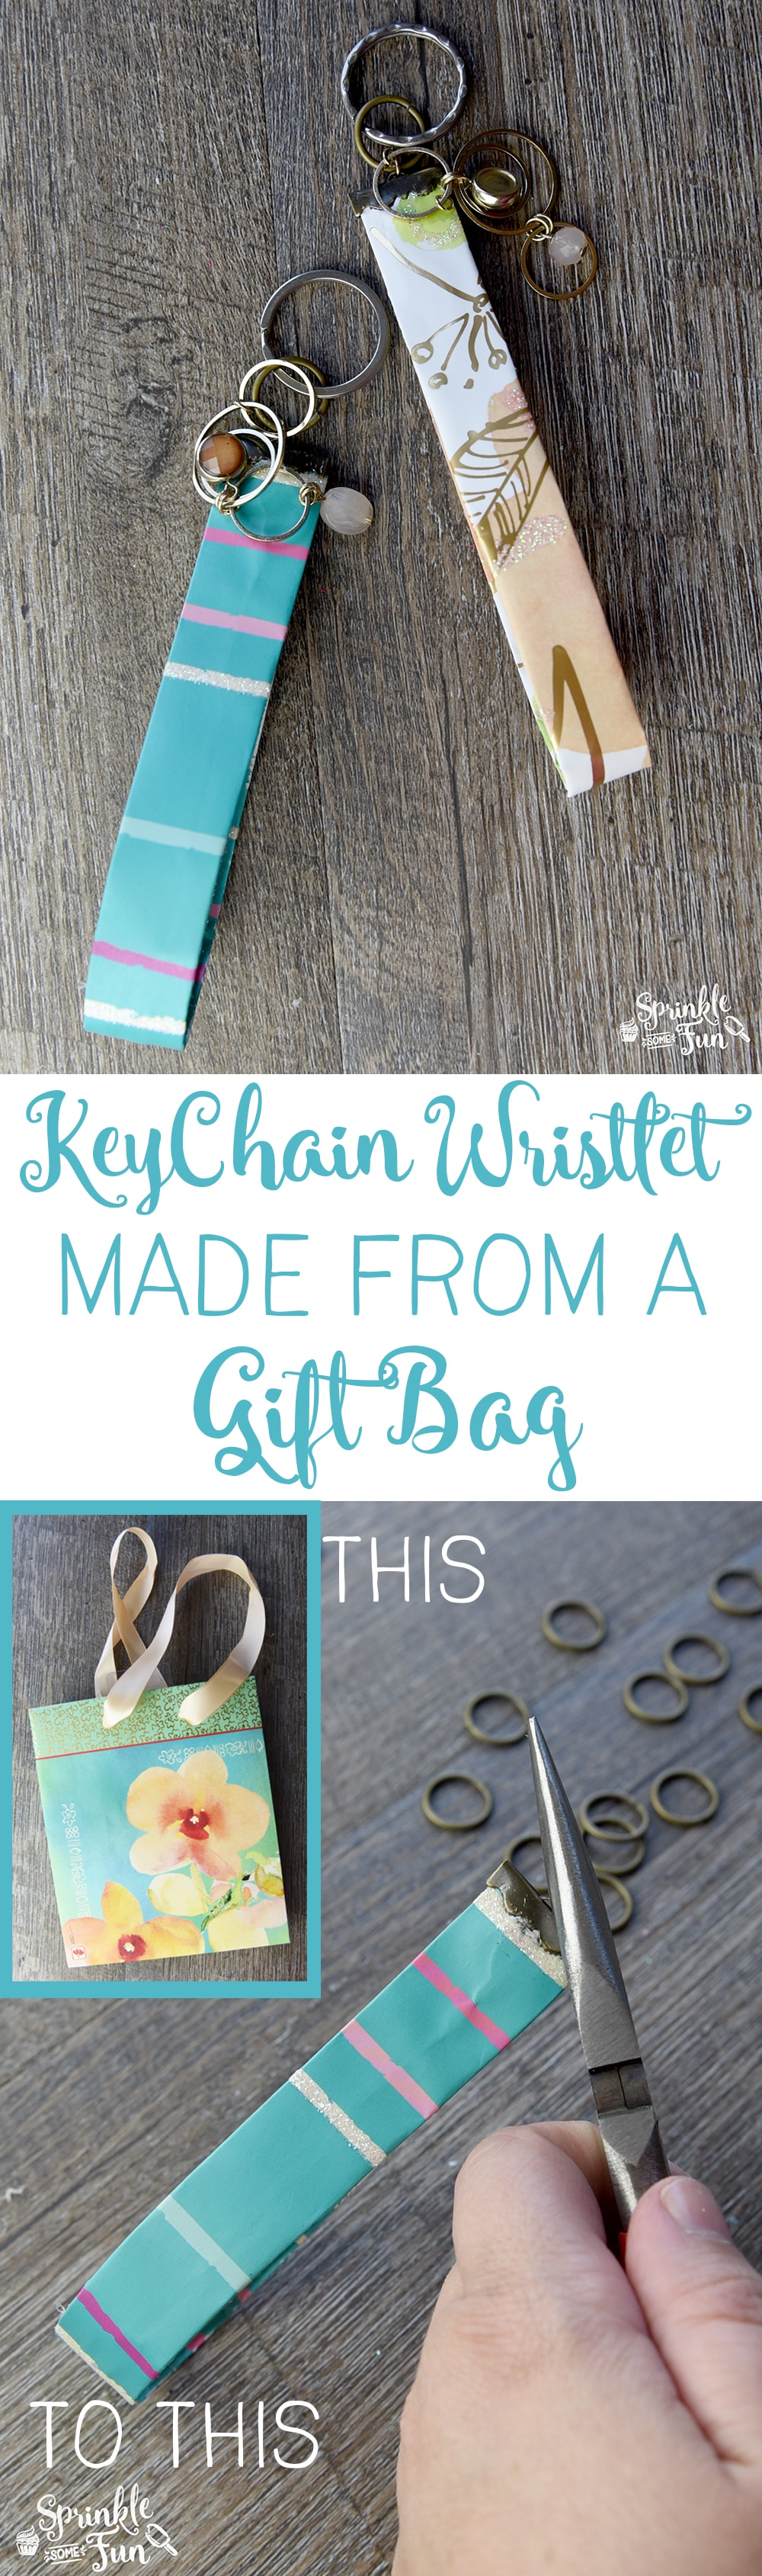 Keychain wristlet made from a gift bag! Easy tutorial for a fun Mother's day gift!